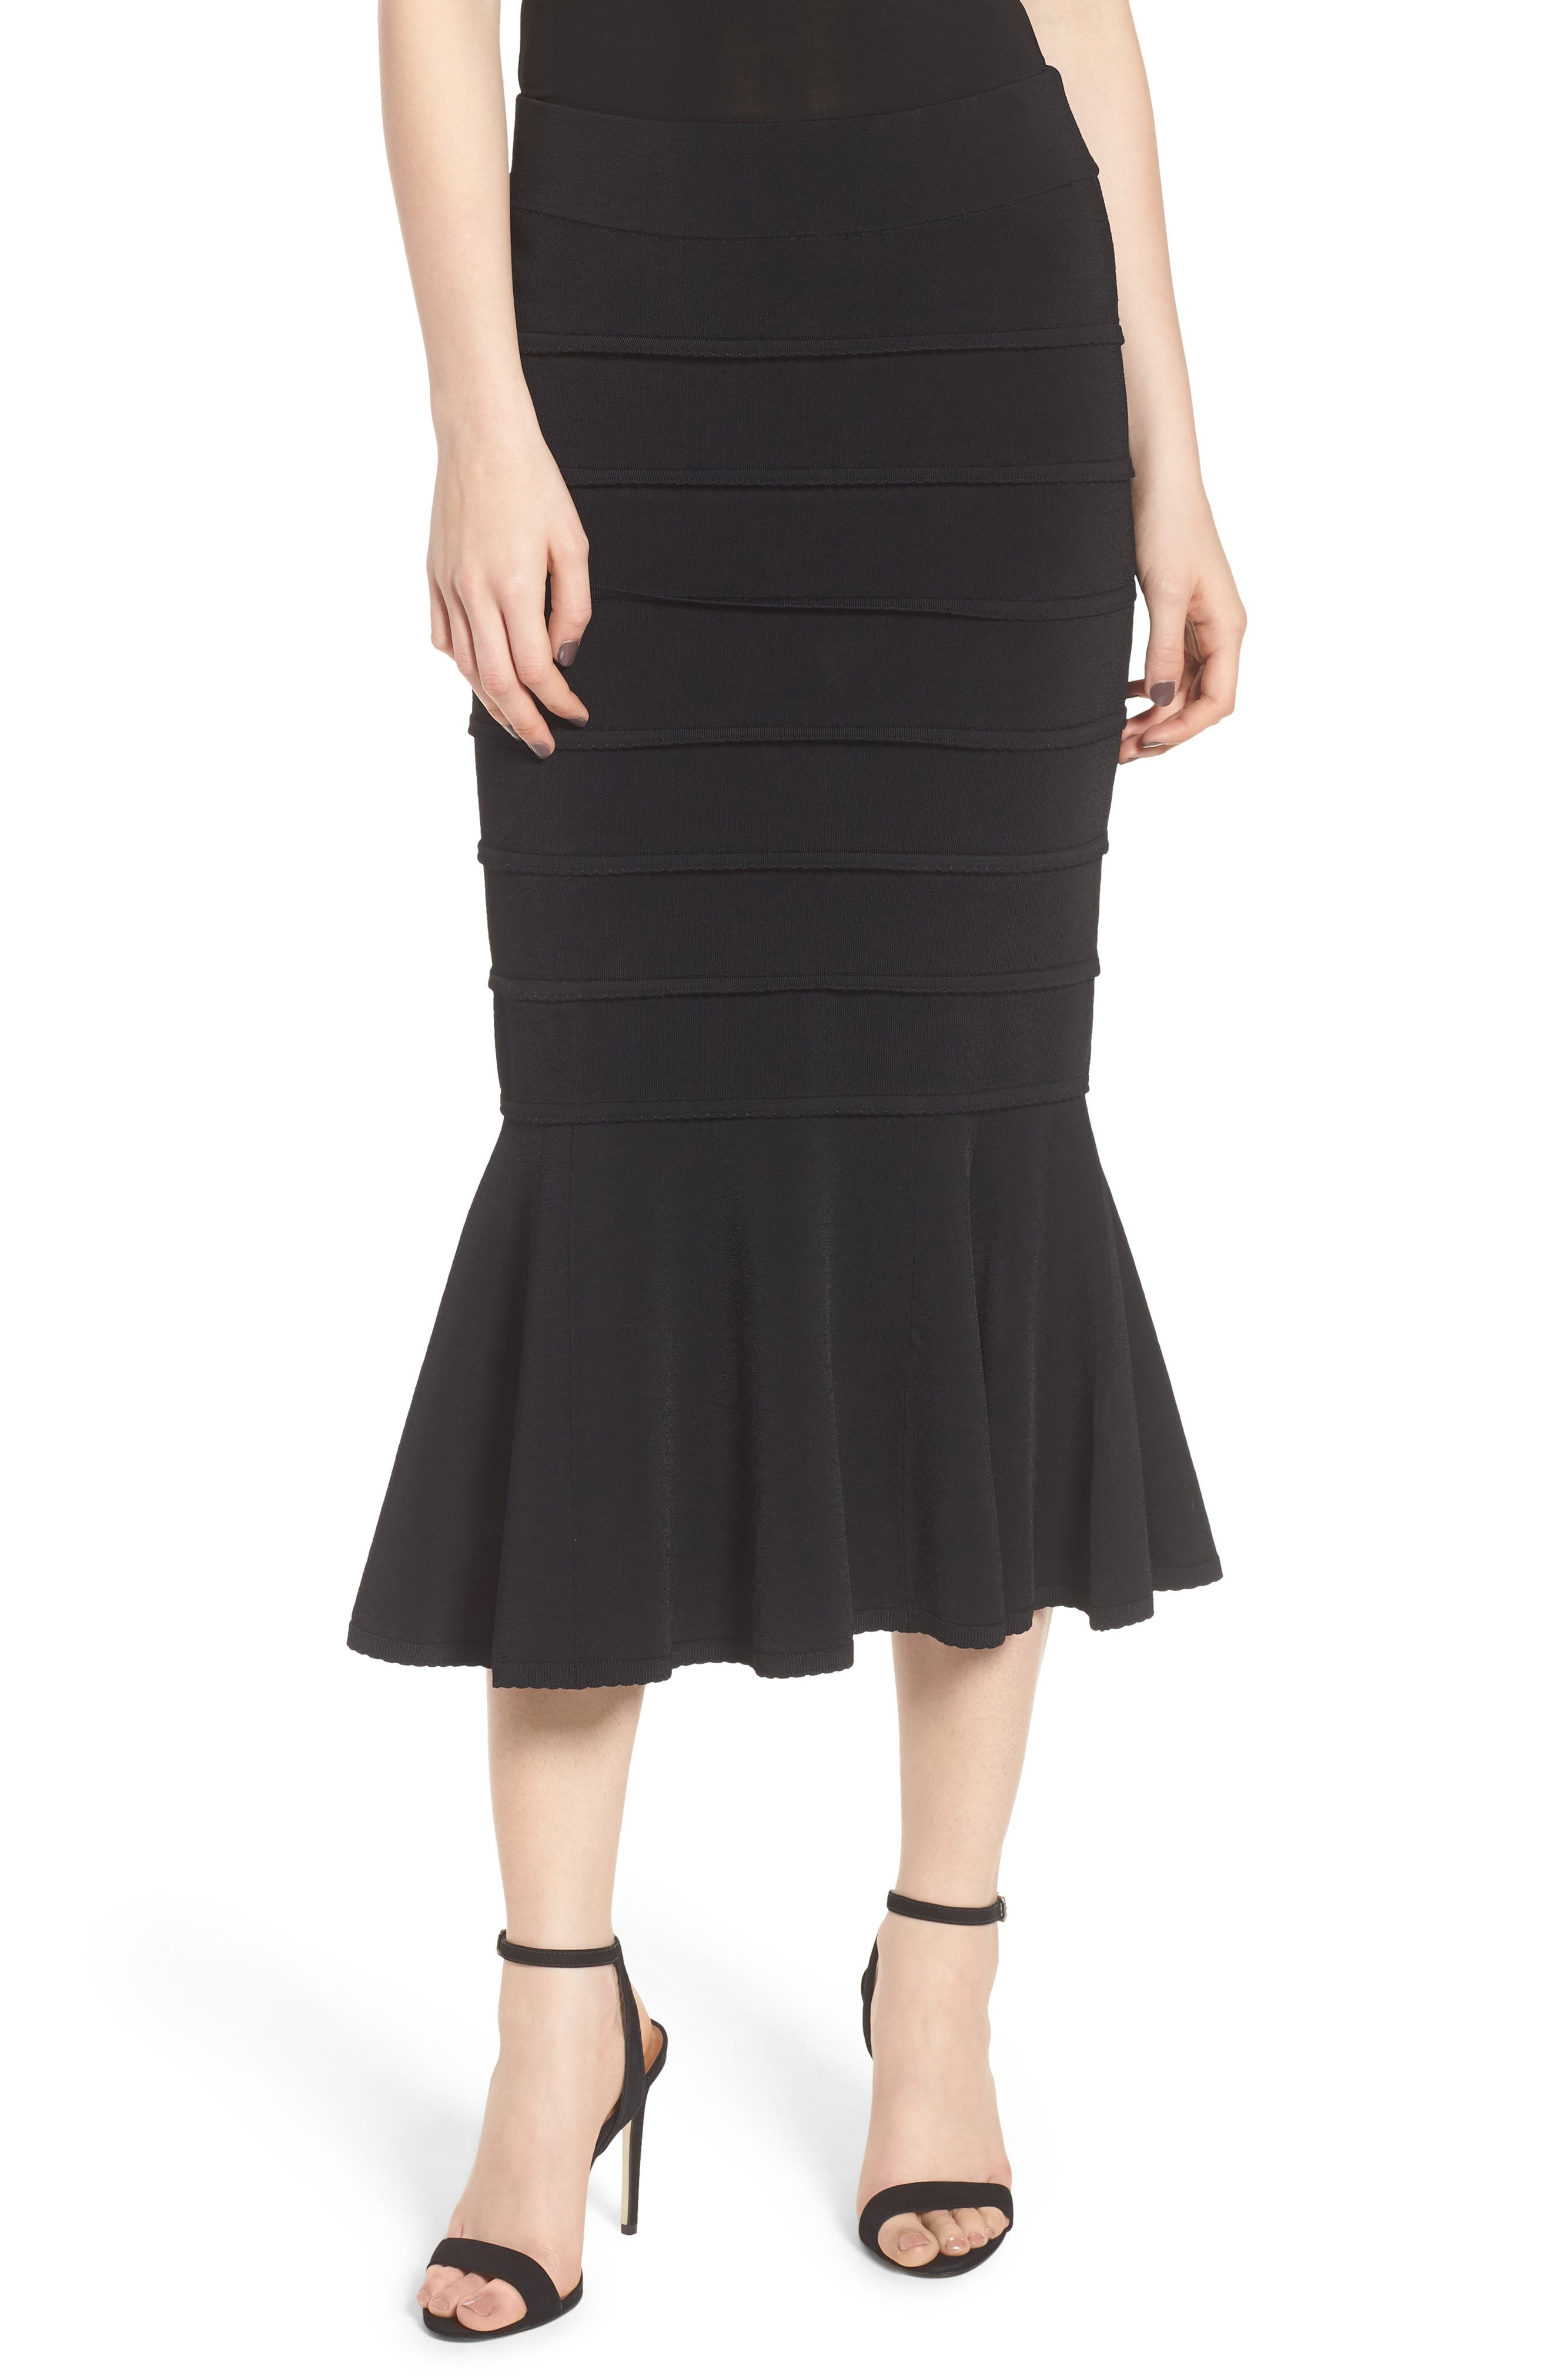 CHELSEA28 Trumpet Skirt, Main, color, 001